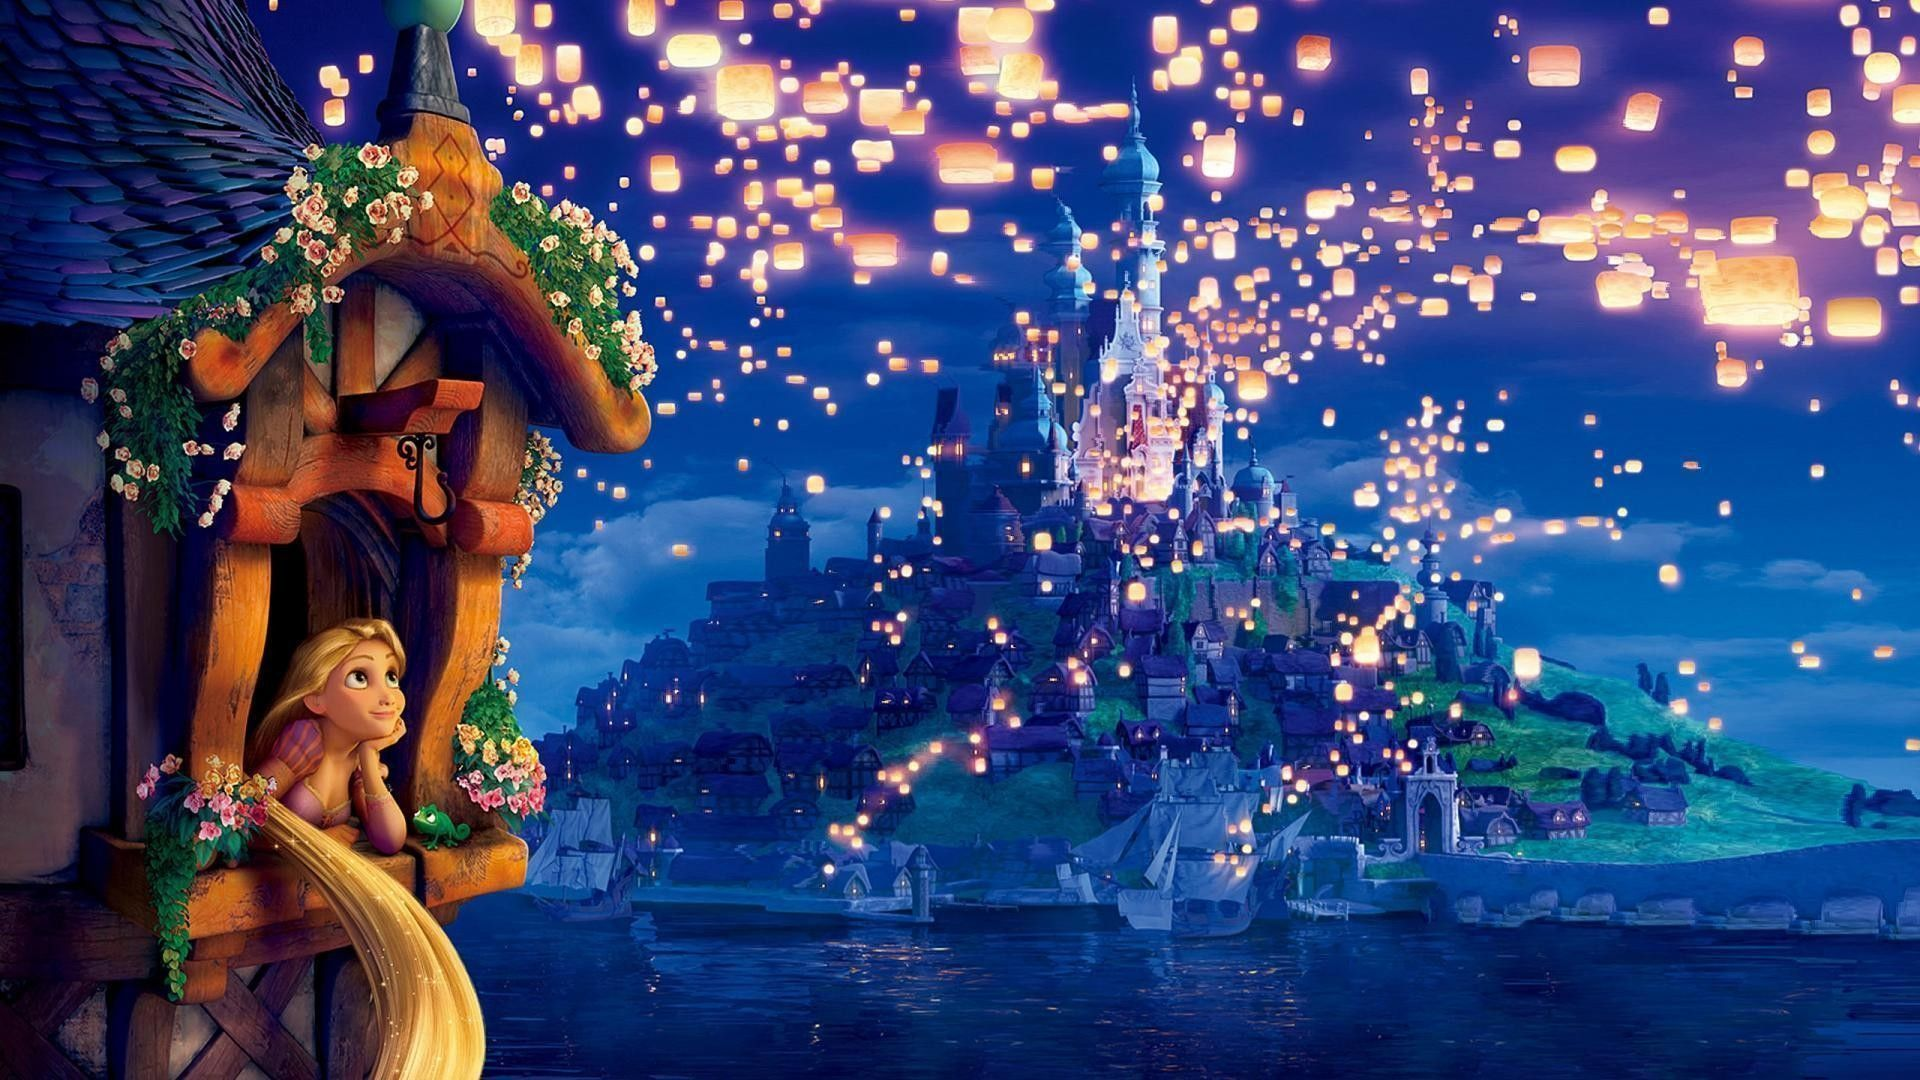 Tangled Wallpapers   Top Tangled Backgrounds   WallpaperAccess 1920x1080